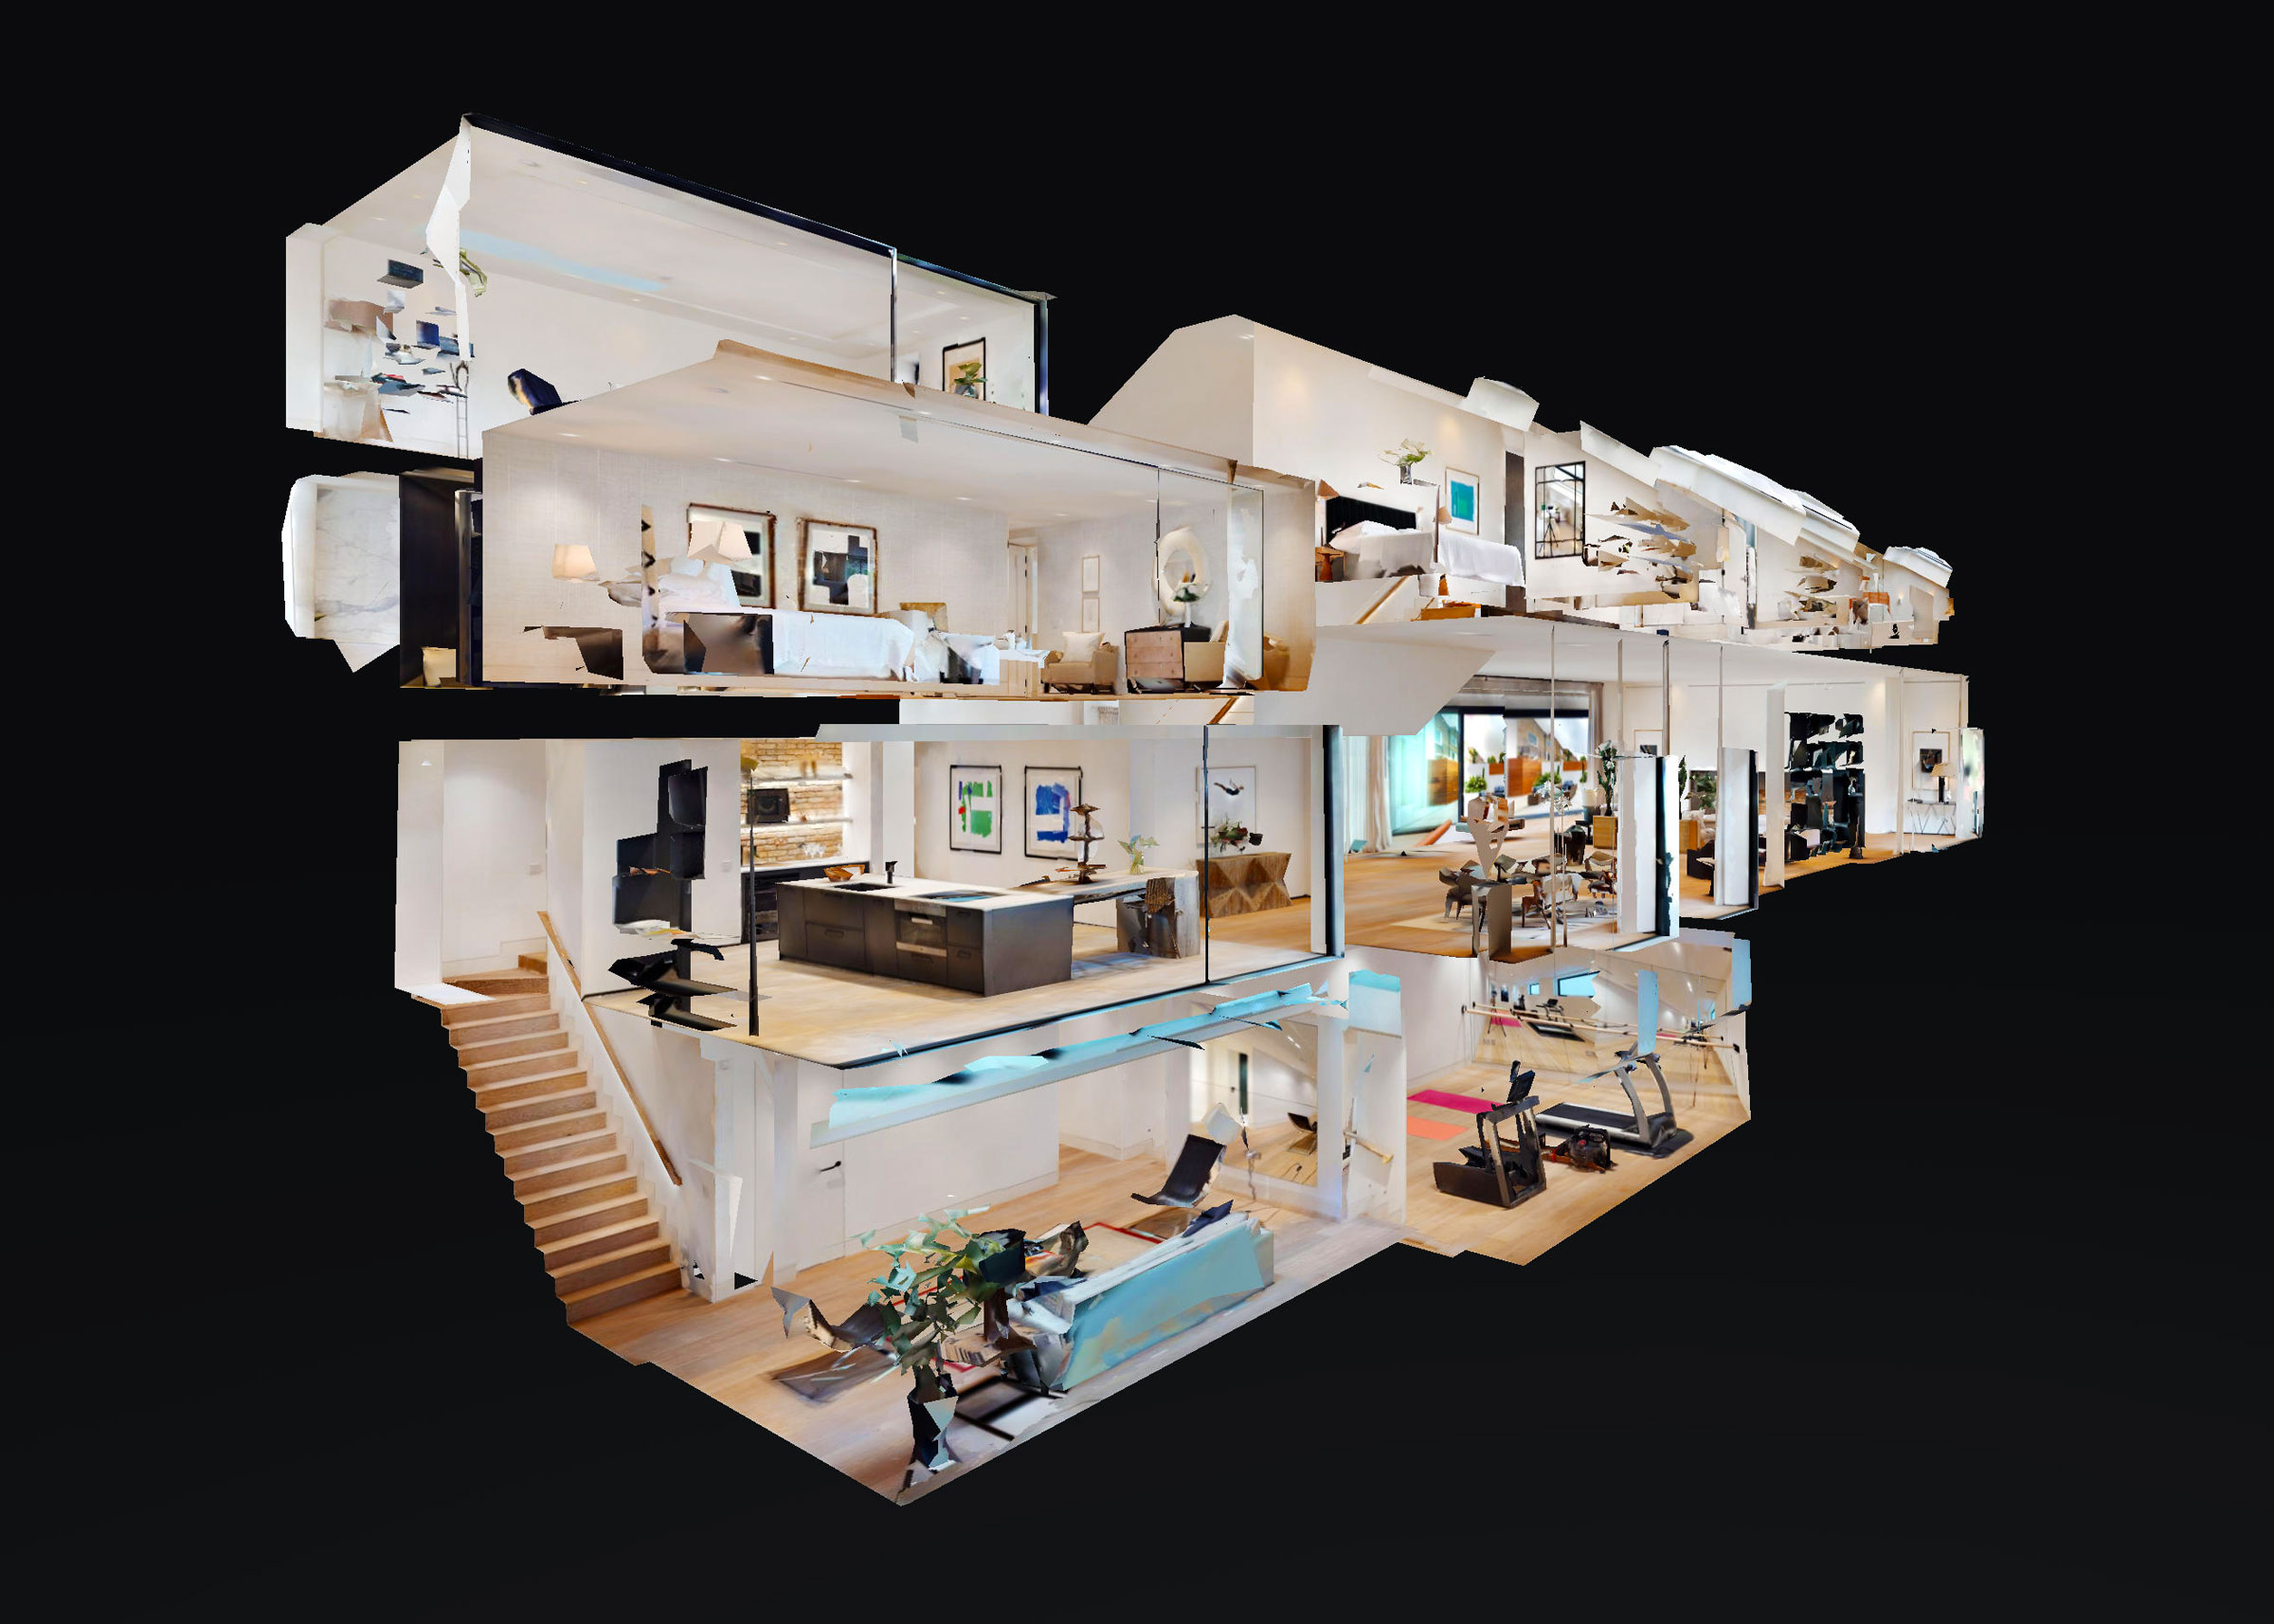 Dollhouse visite virtuelle matterport